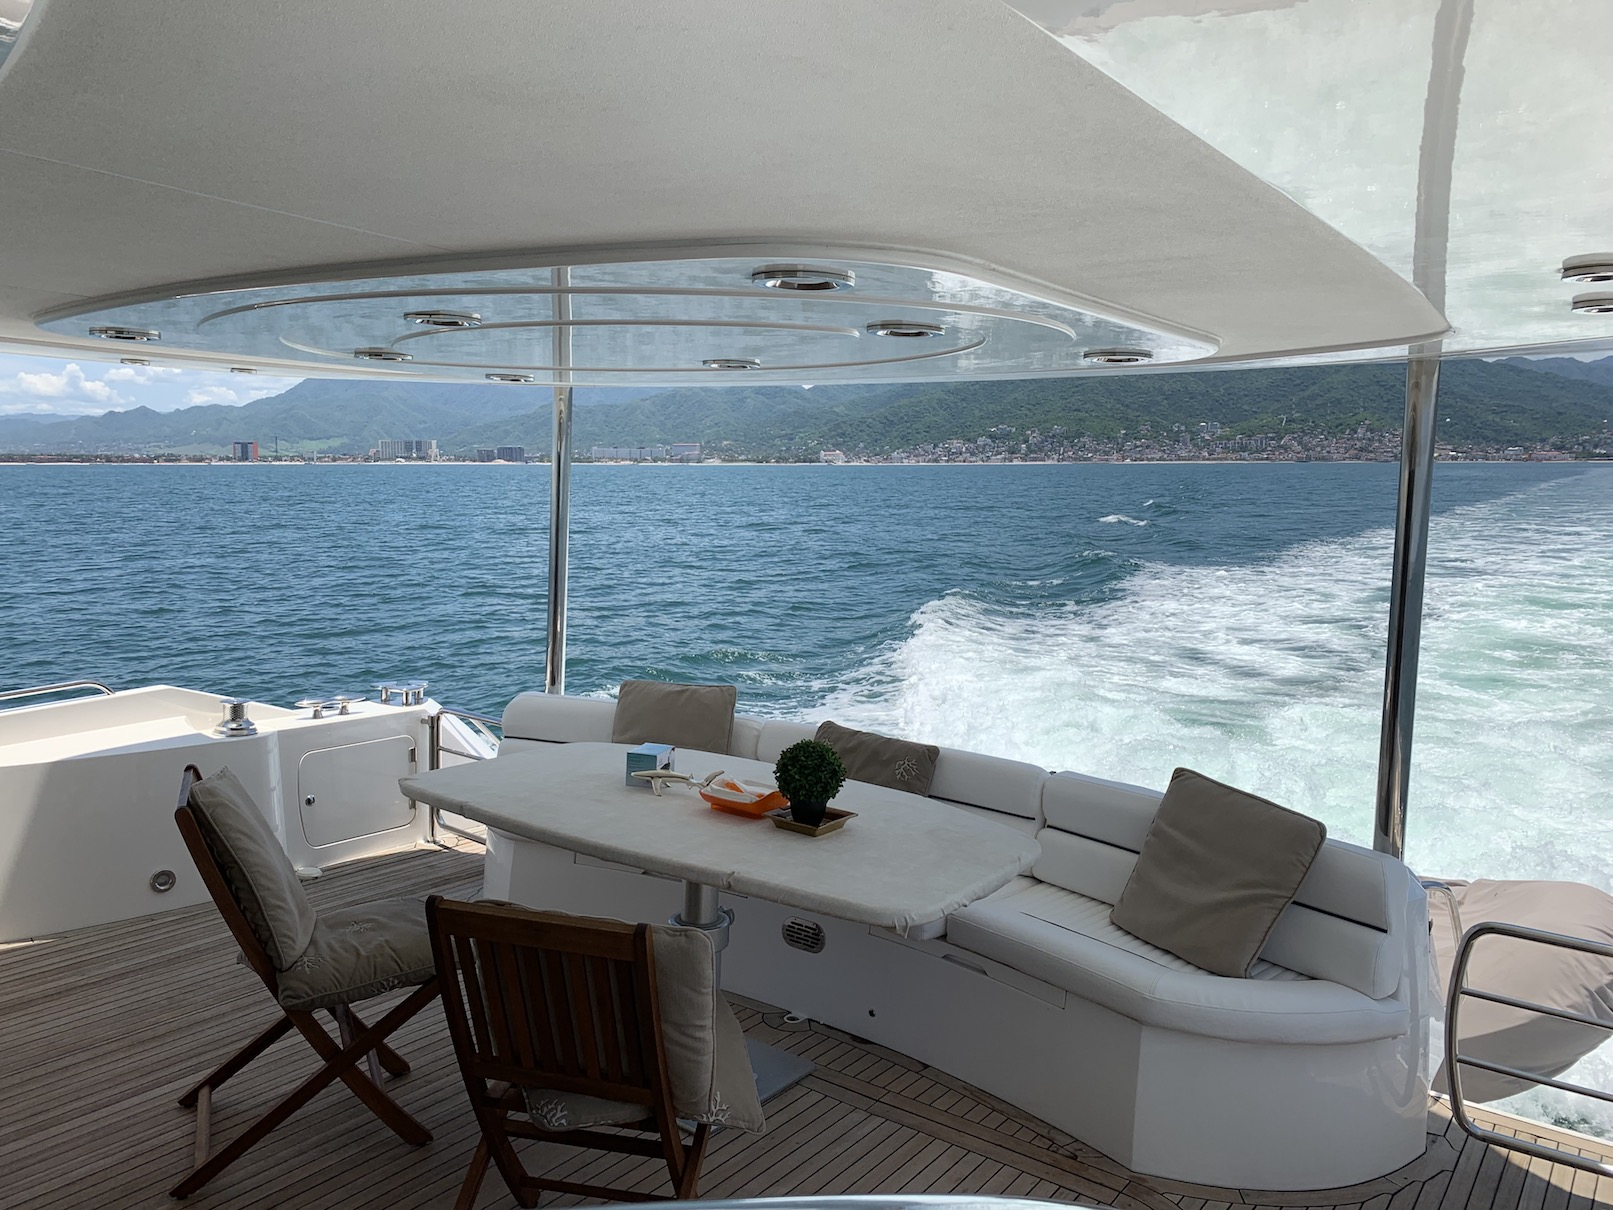 76 ft. Sunseeker - Power Yacht - Aft - Cockpit Seat and Dining